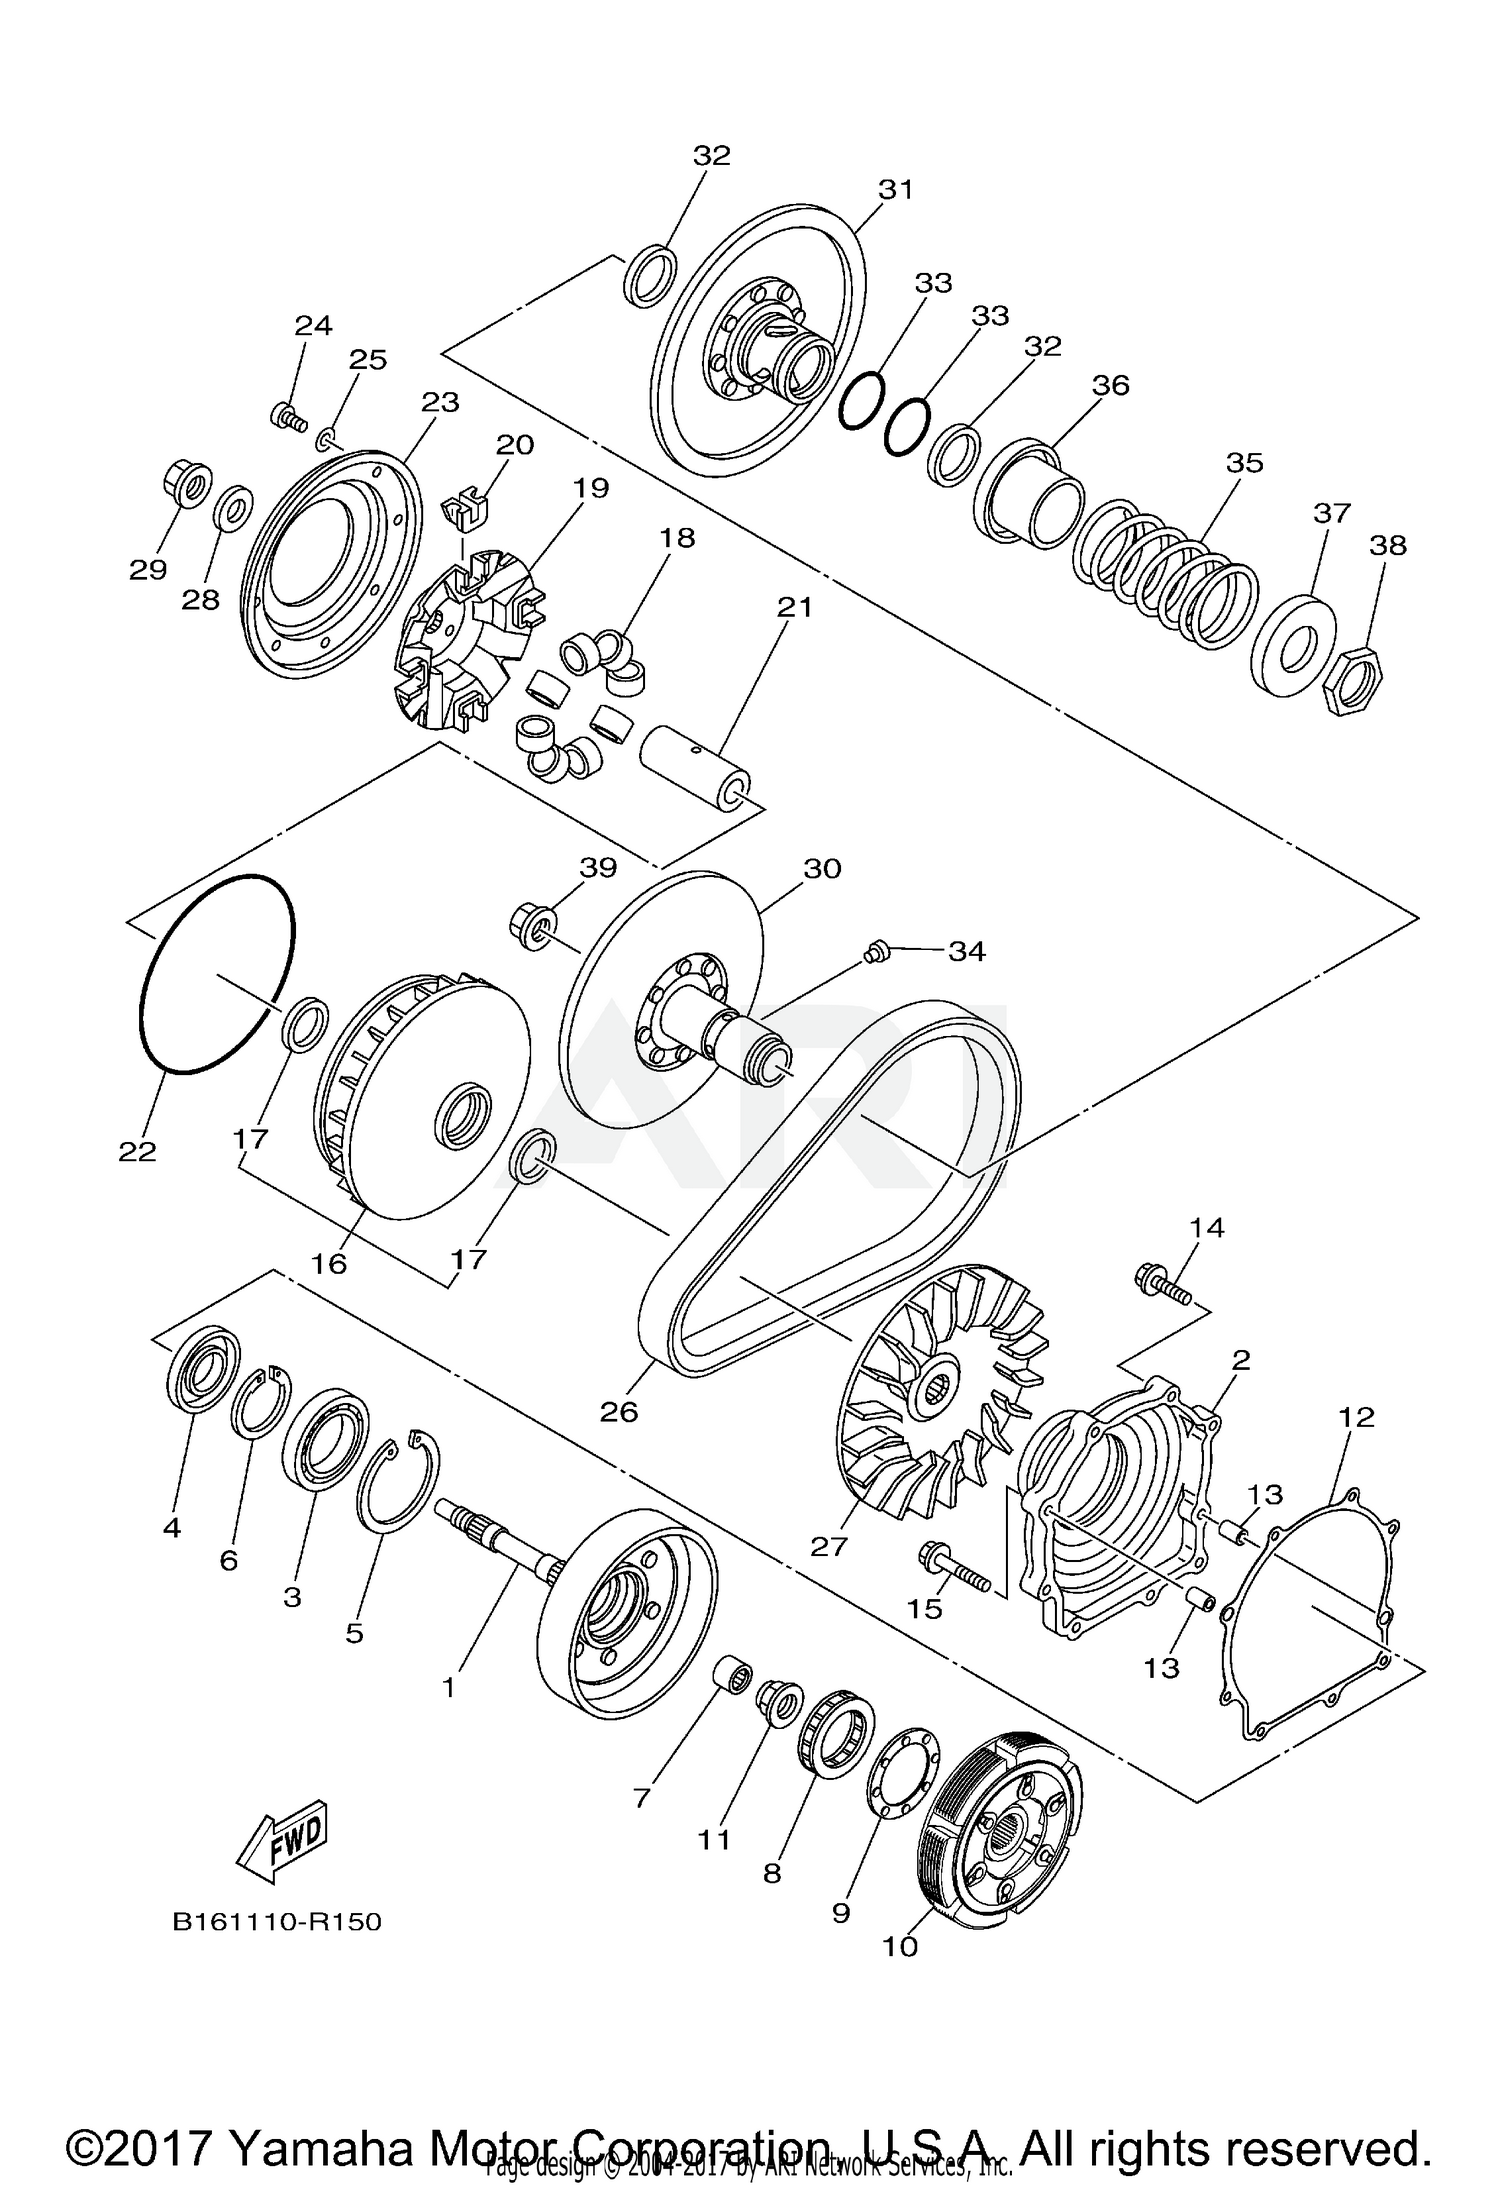 2018 yamaha grizzly 700 eps yfm70gpajw clutch partsschematic search results (0 parts in 0 schematics)